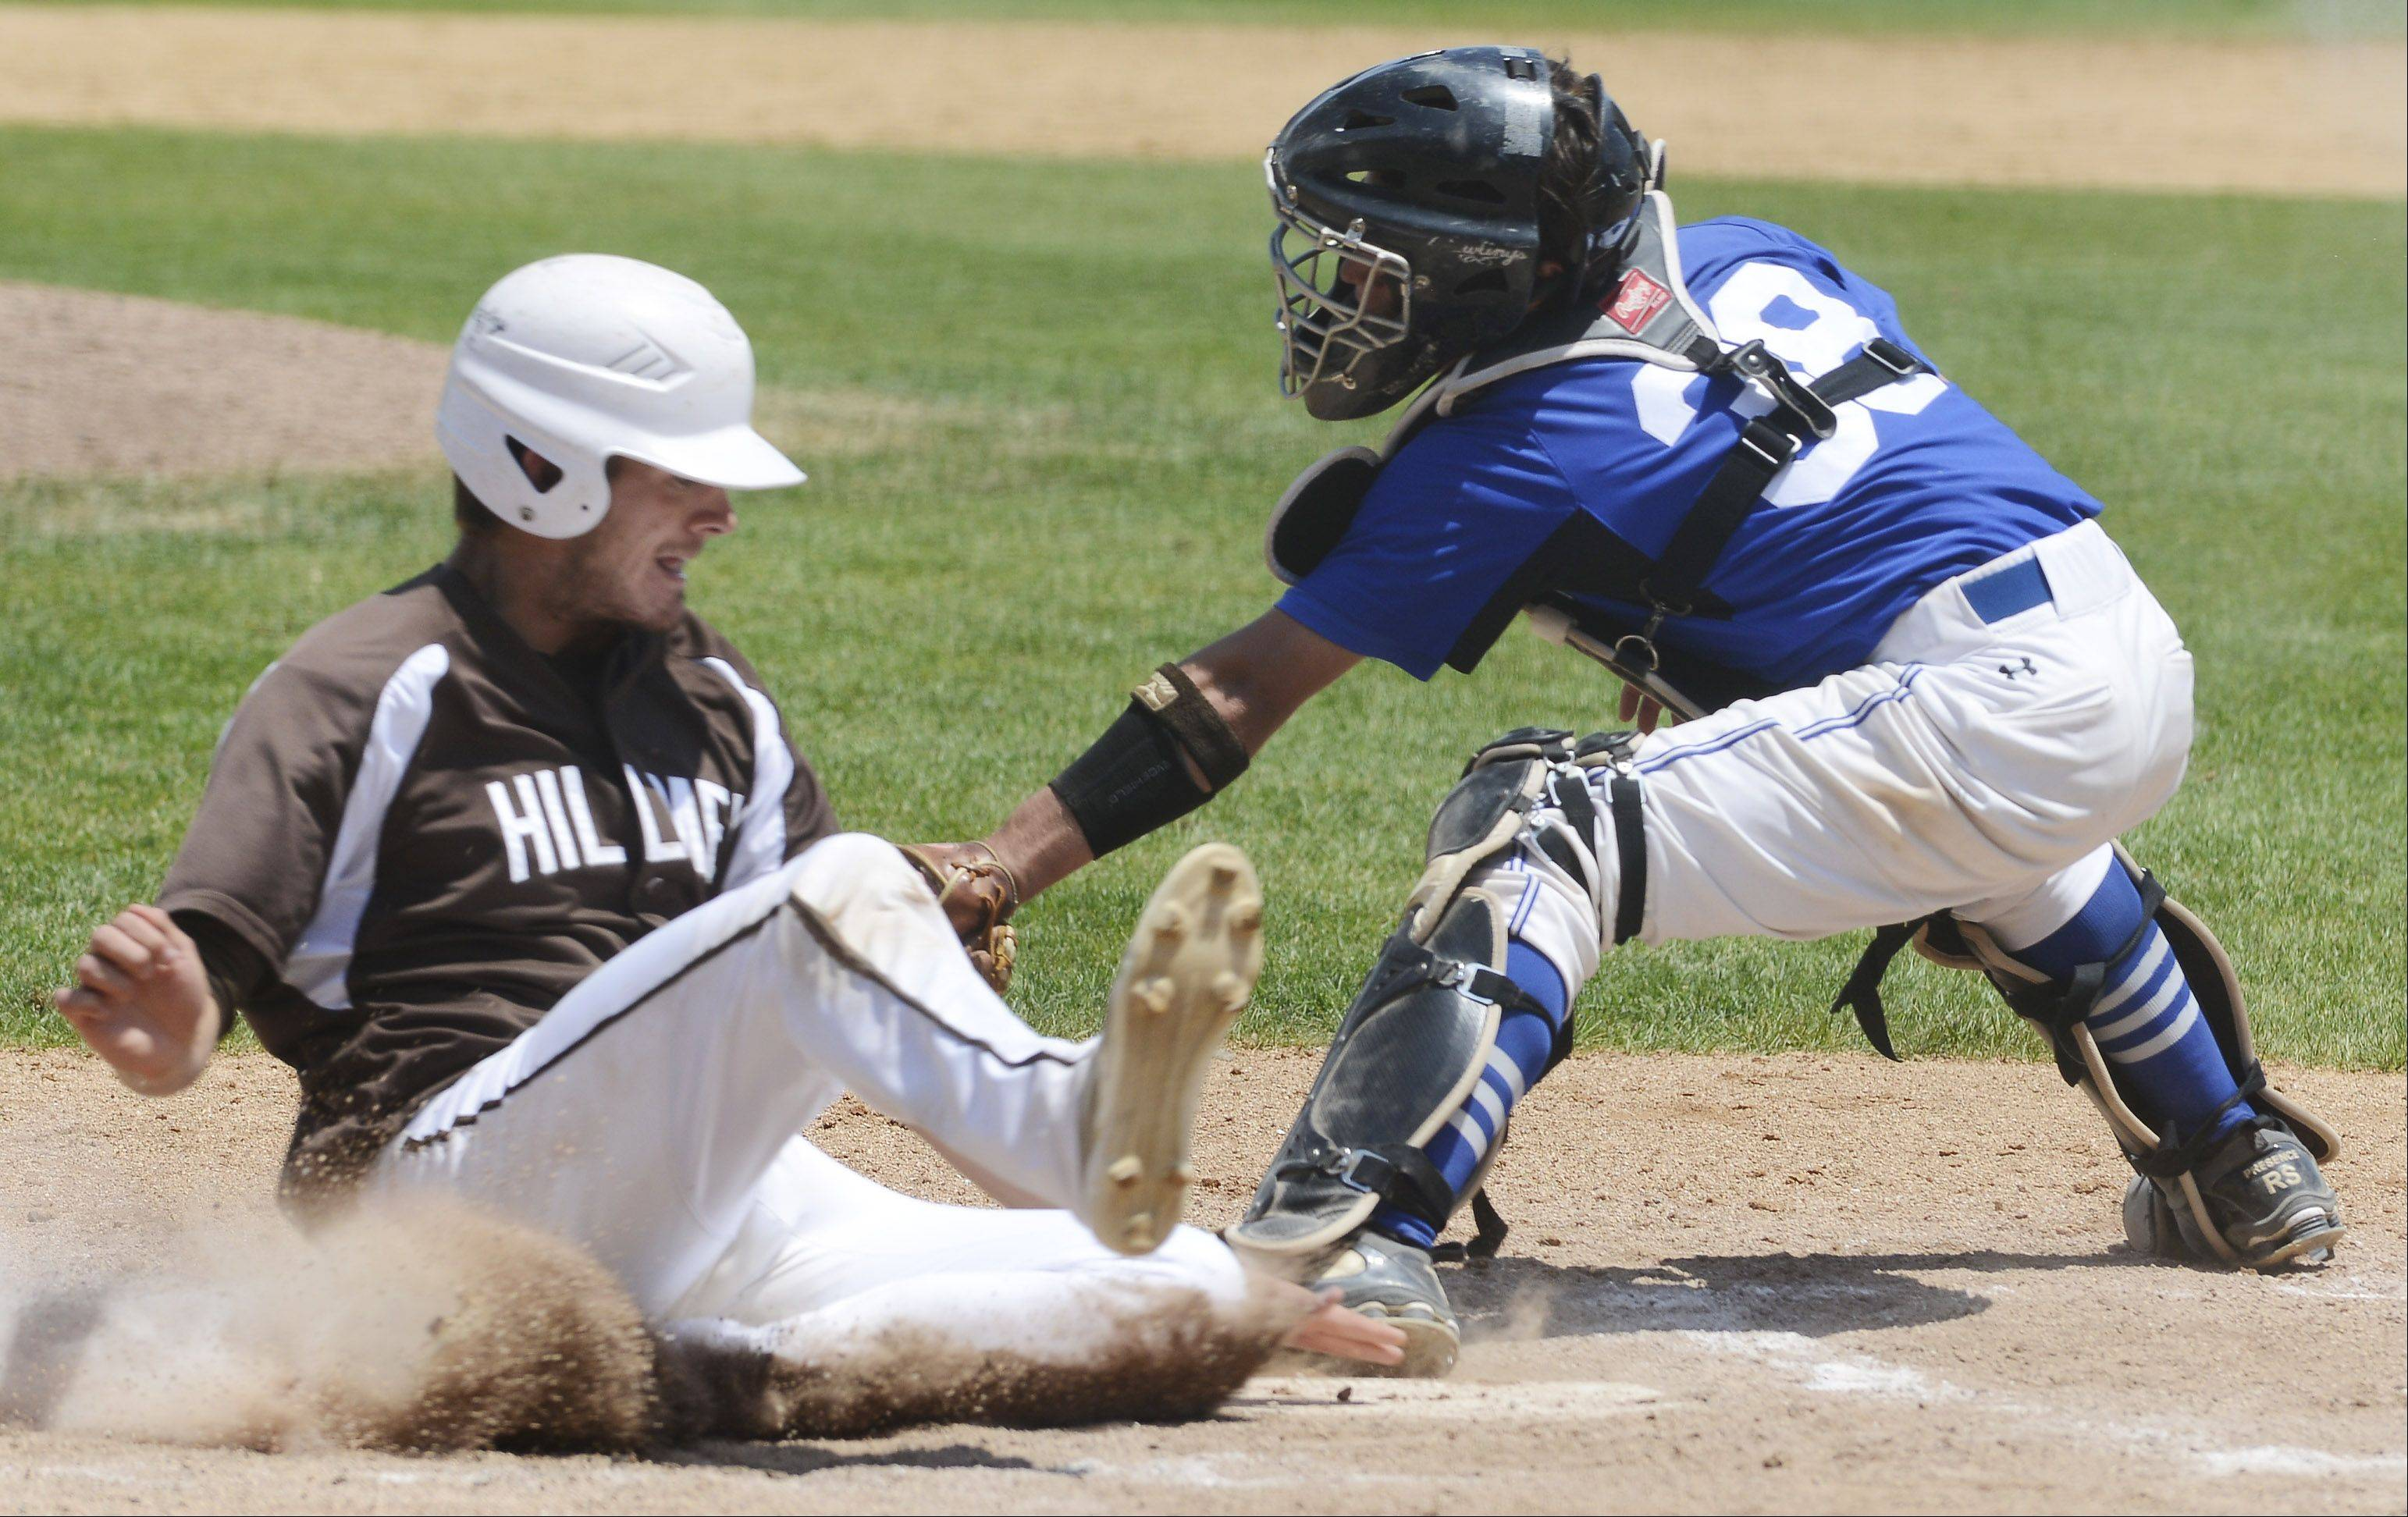 Joliet Catholic's Chris Tschida scores the Hilltoppers' second run of the fourth inning as St. Francis catcher Brett Jungles applies the tag during the Class 3A state baseball championship game at Silver Cross Field in Joliet Saturday.